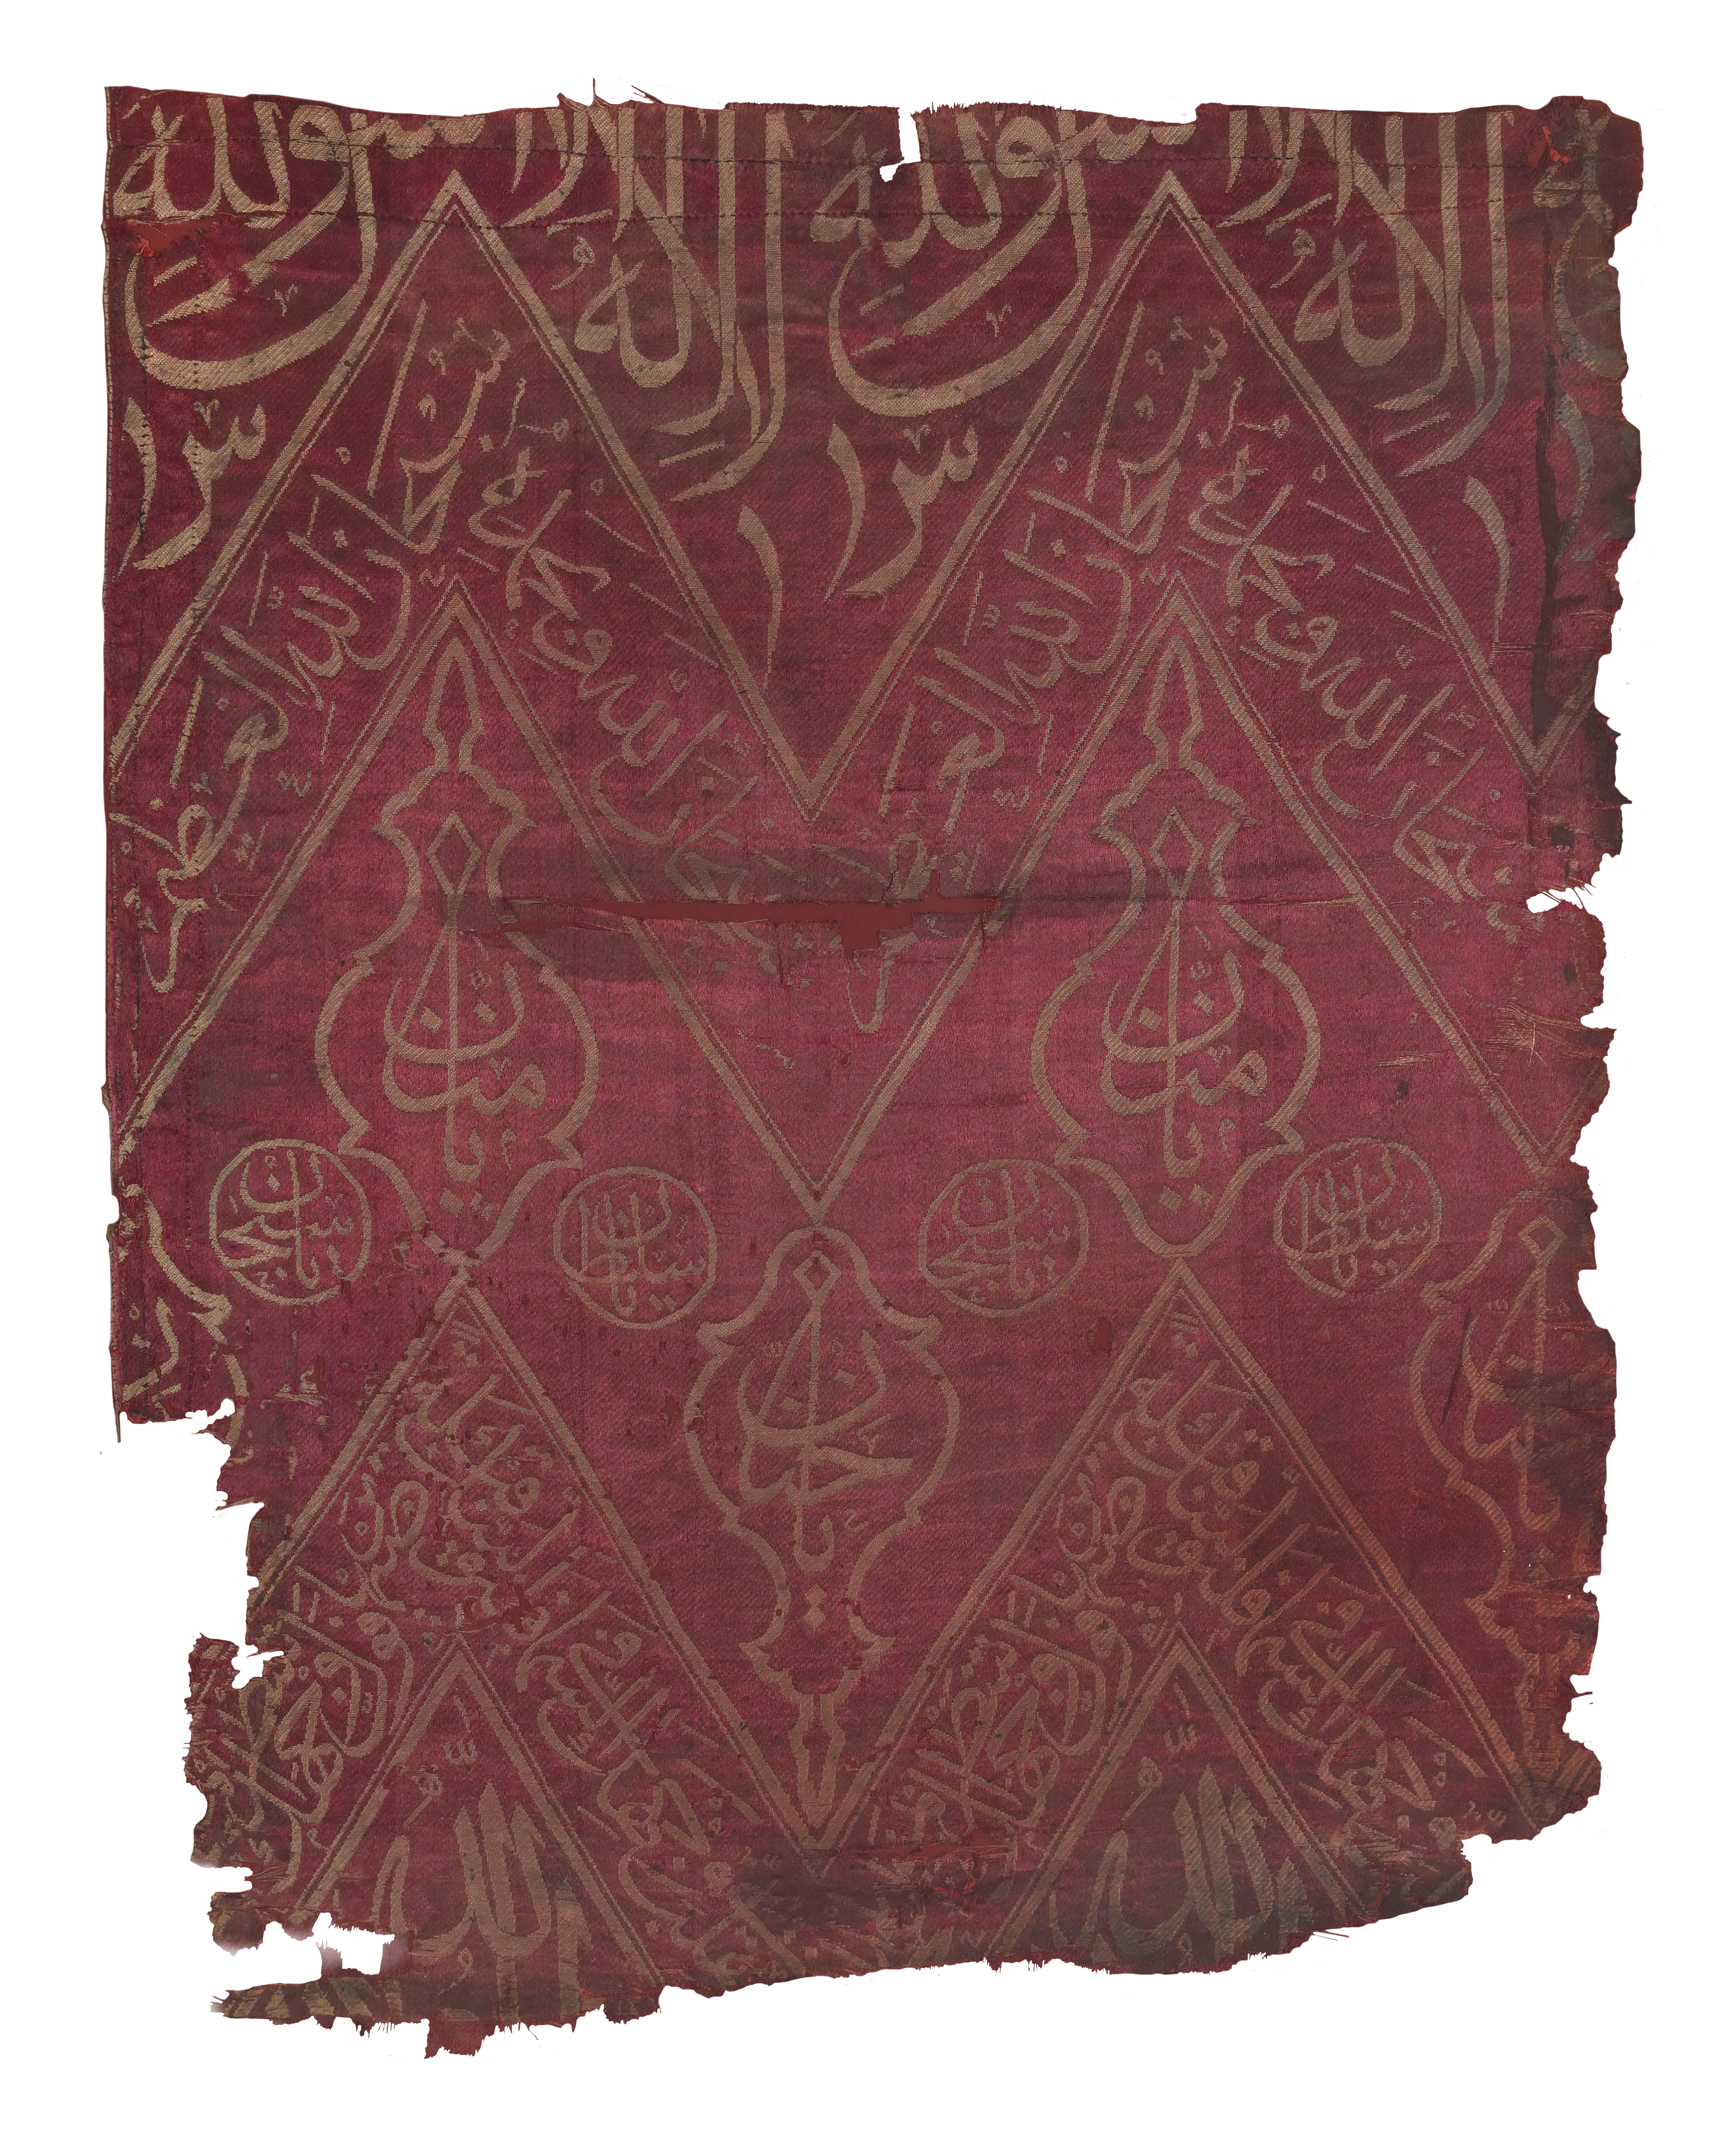 Section from the internal kiswah of the Ka'bah